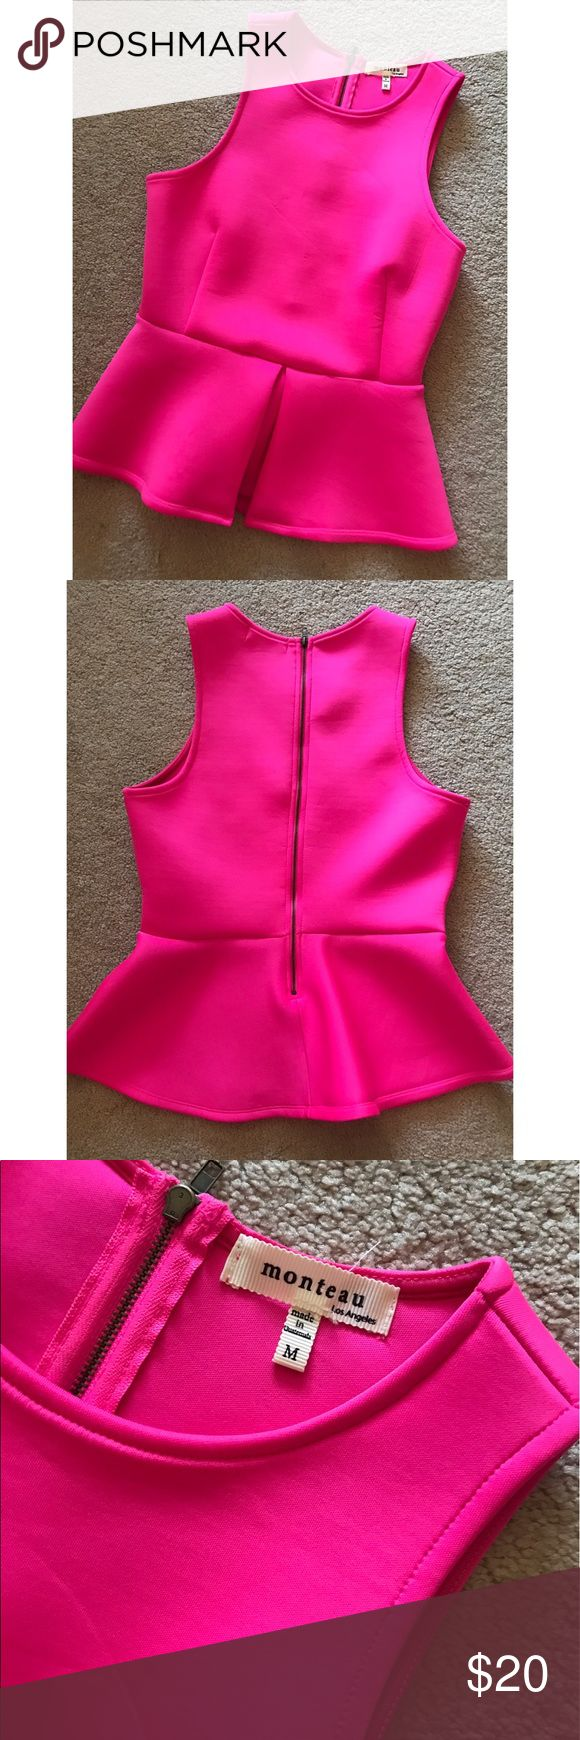 Monteau Hot Pink Neoprene Sleeveless Peplum Top Never been worn hot pink neoprene peplum top in perfect condition. High quality fabric and very flattering! Size medium. Monteau Tops Tank Tops